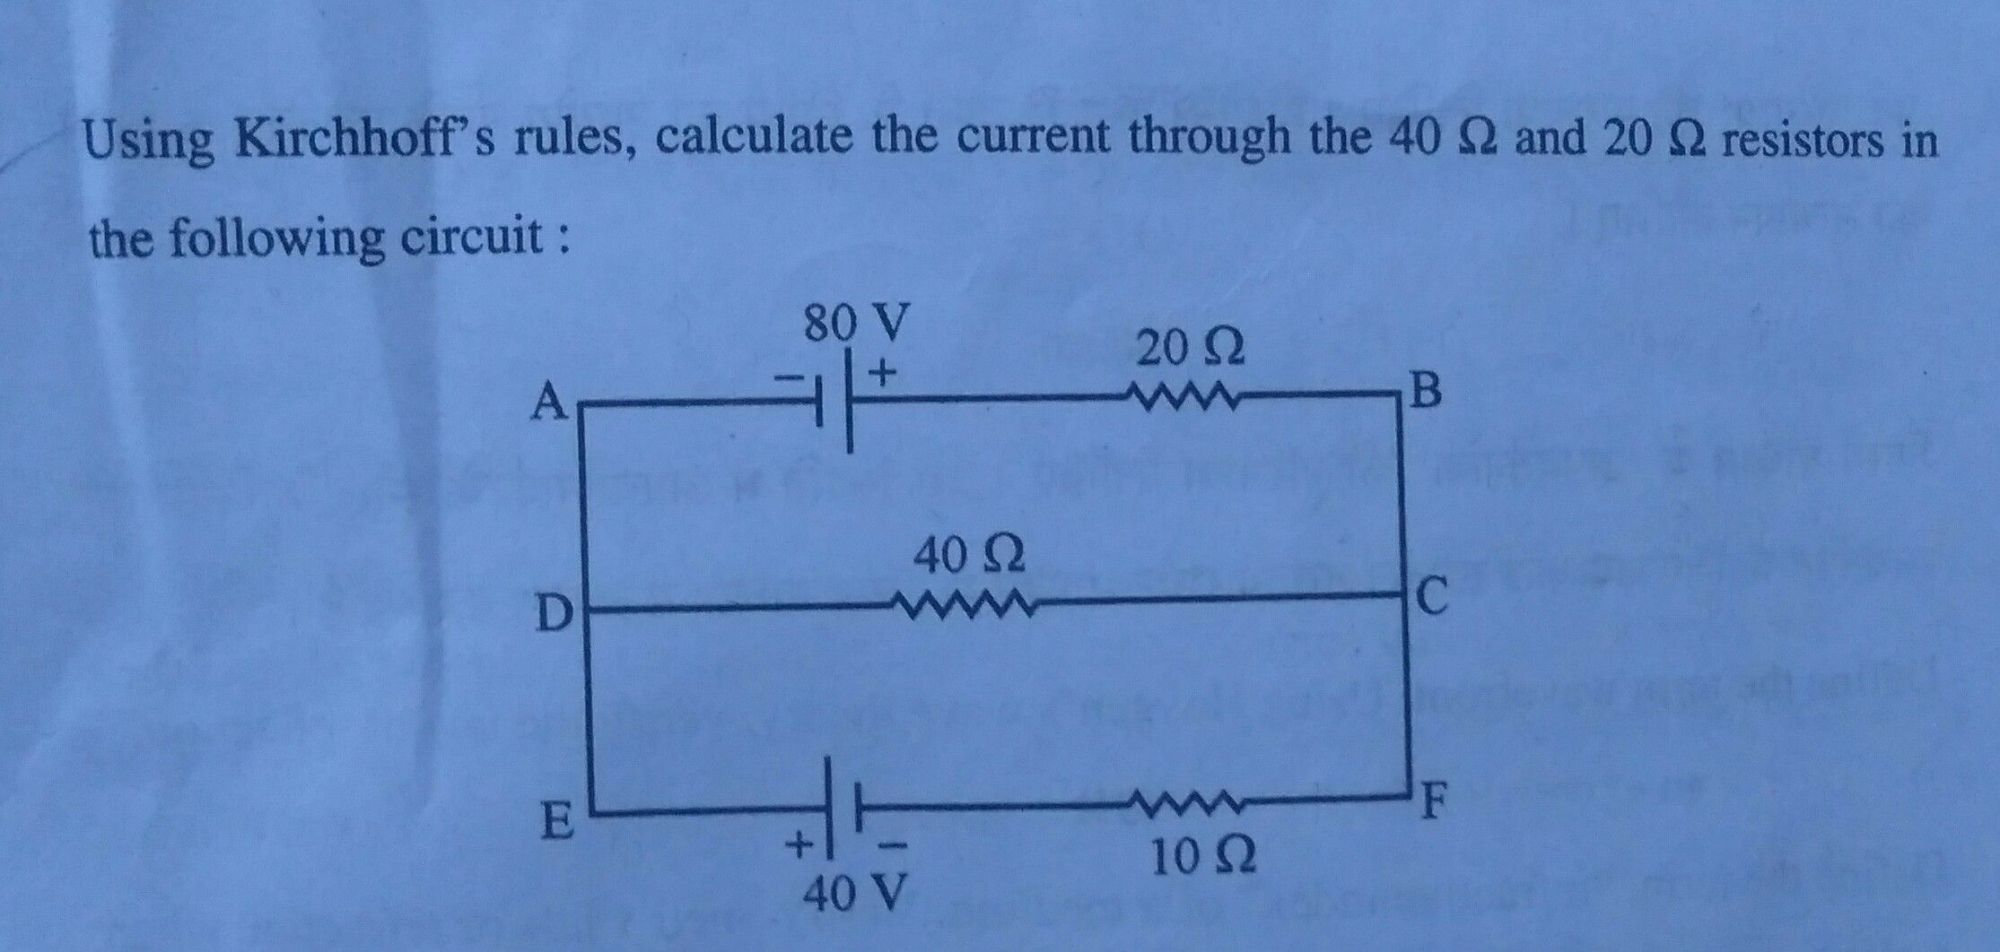 hight resolution of can anyone tell me the answer for this question